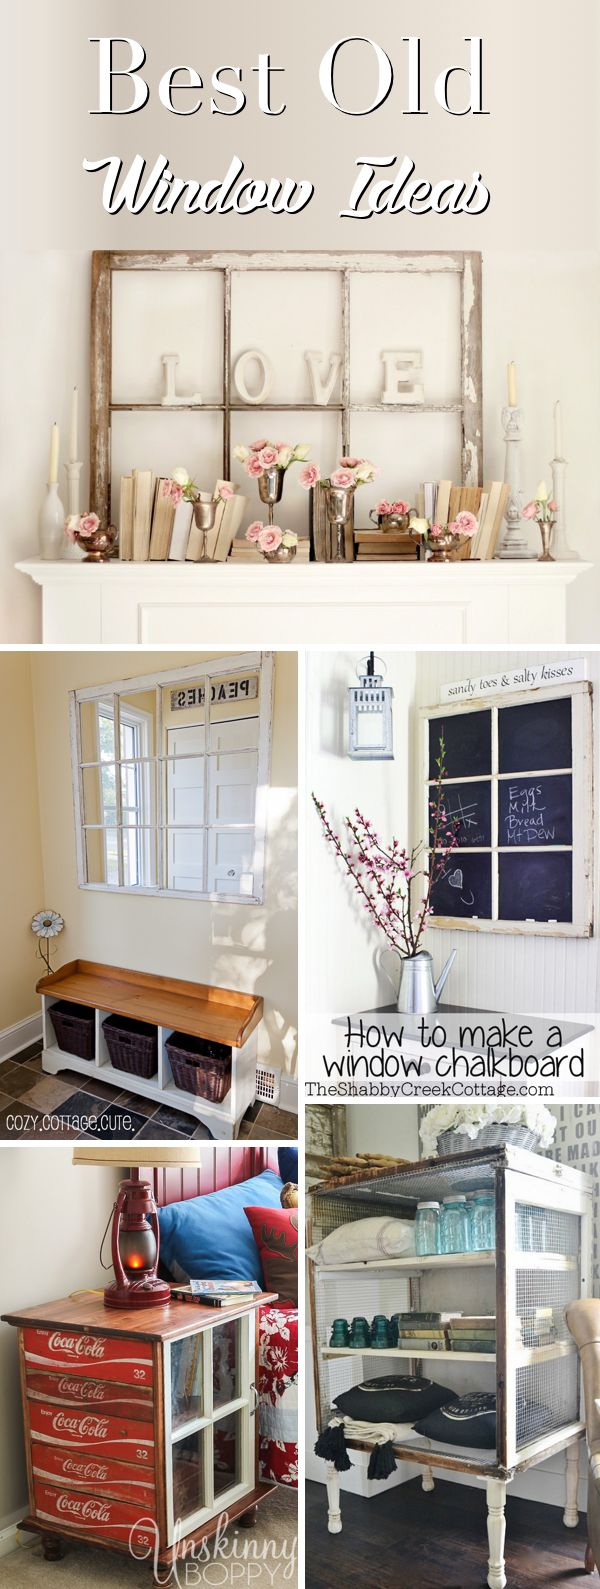 25 Old Window Ideas Transforming Those Frames From Odd to ...